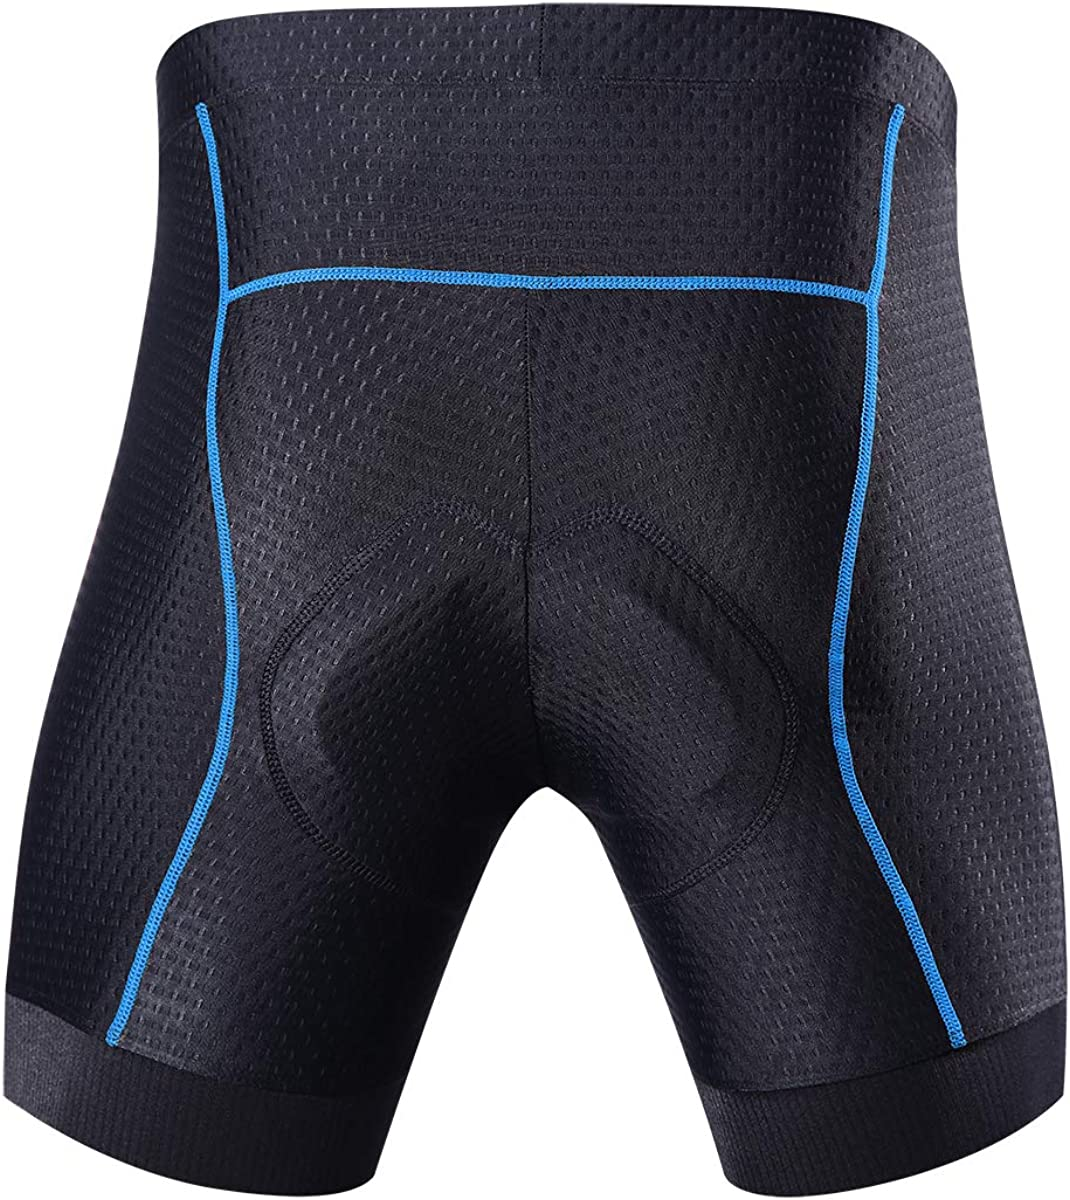 Souke Sports Men's Cycling Underwear Shorts 4D Padded Bike Bicycle MTB Liner Shorts with Anti-Slip Leg Grips: Clothing